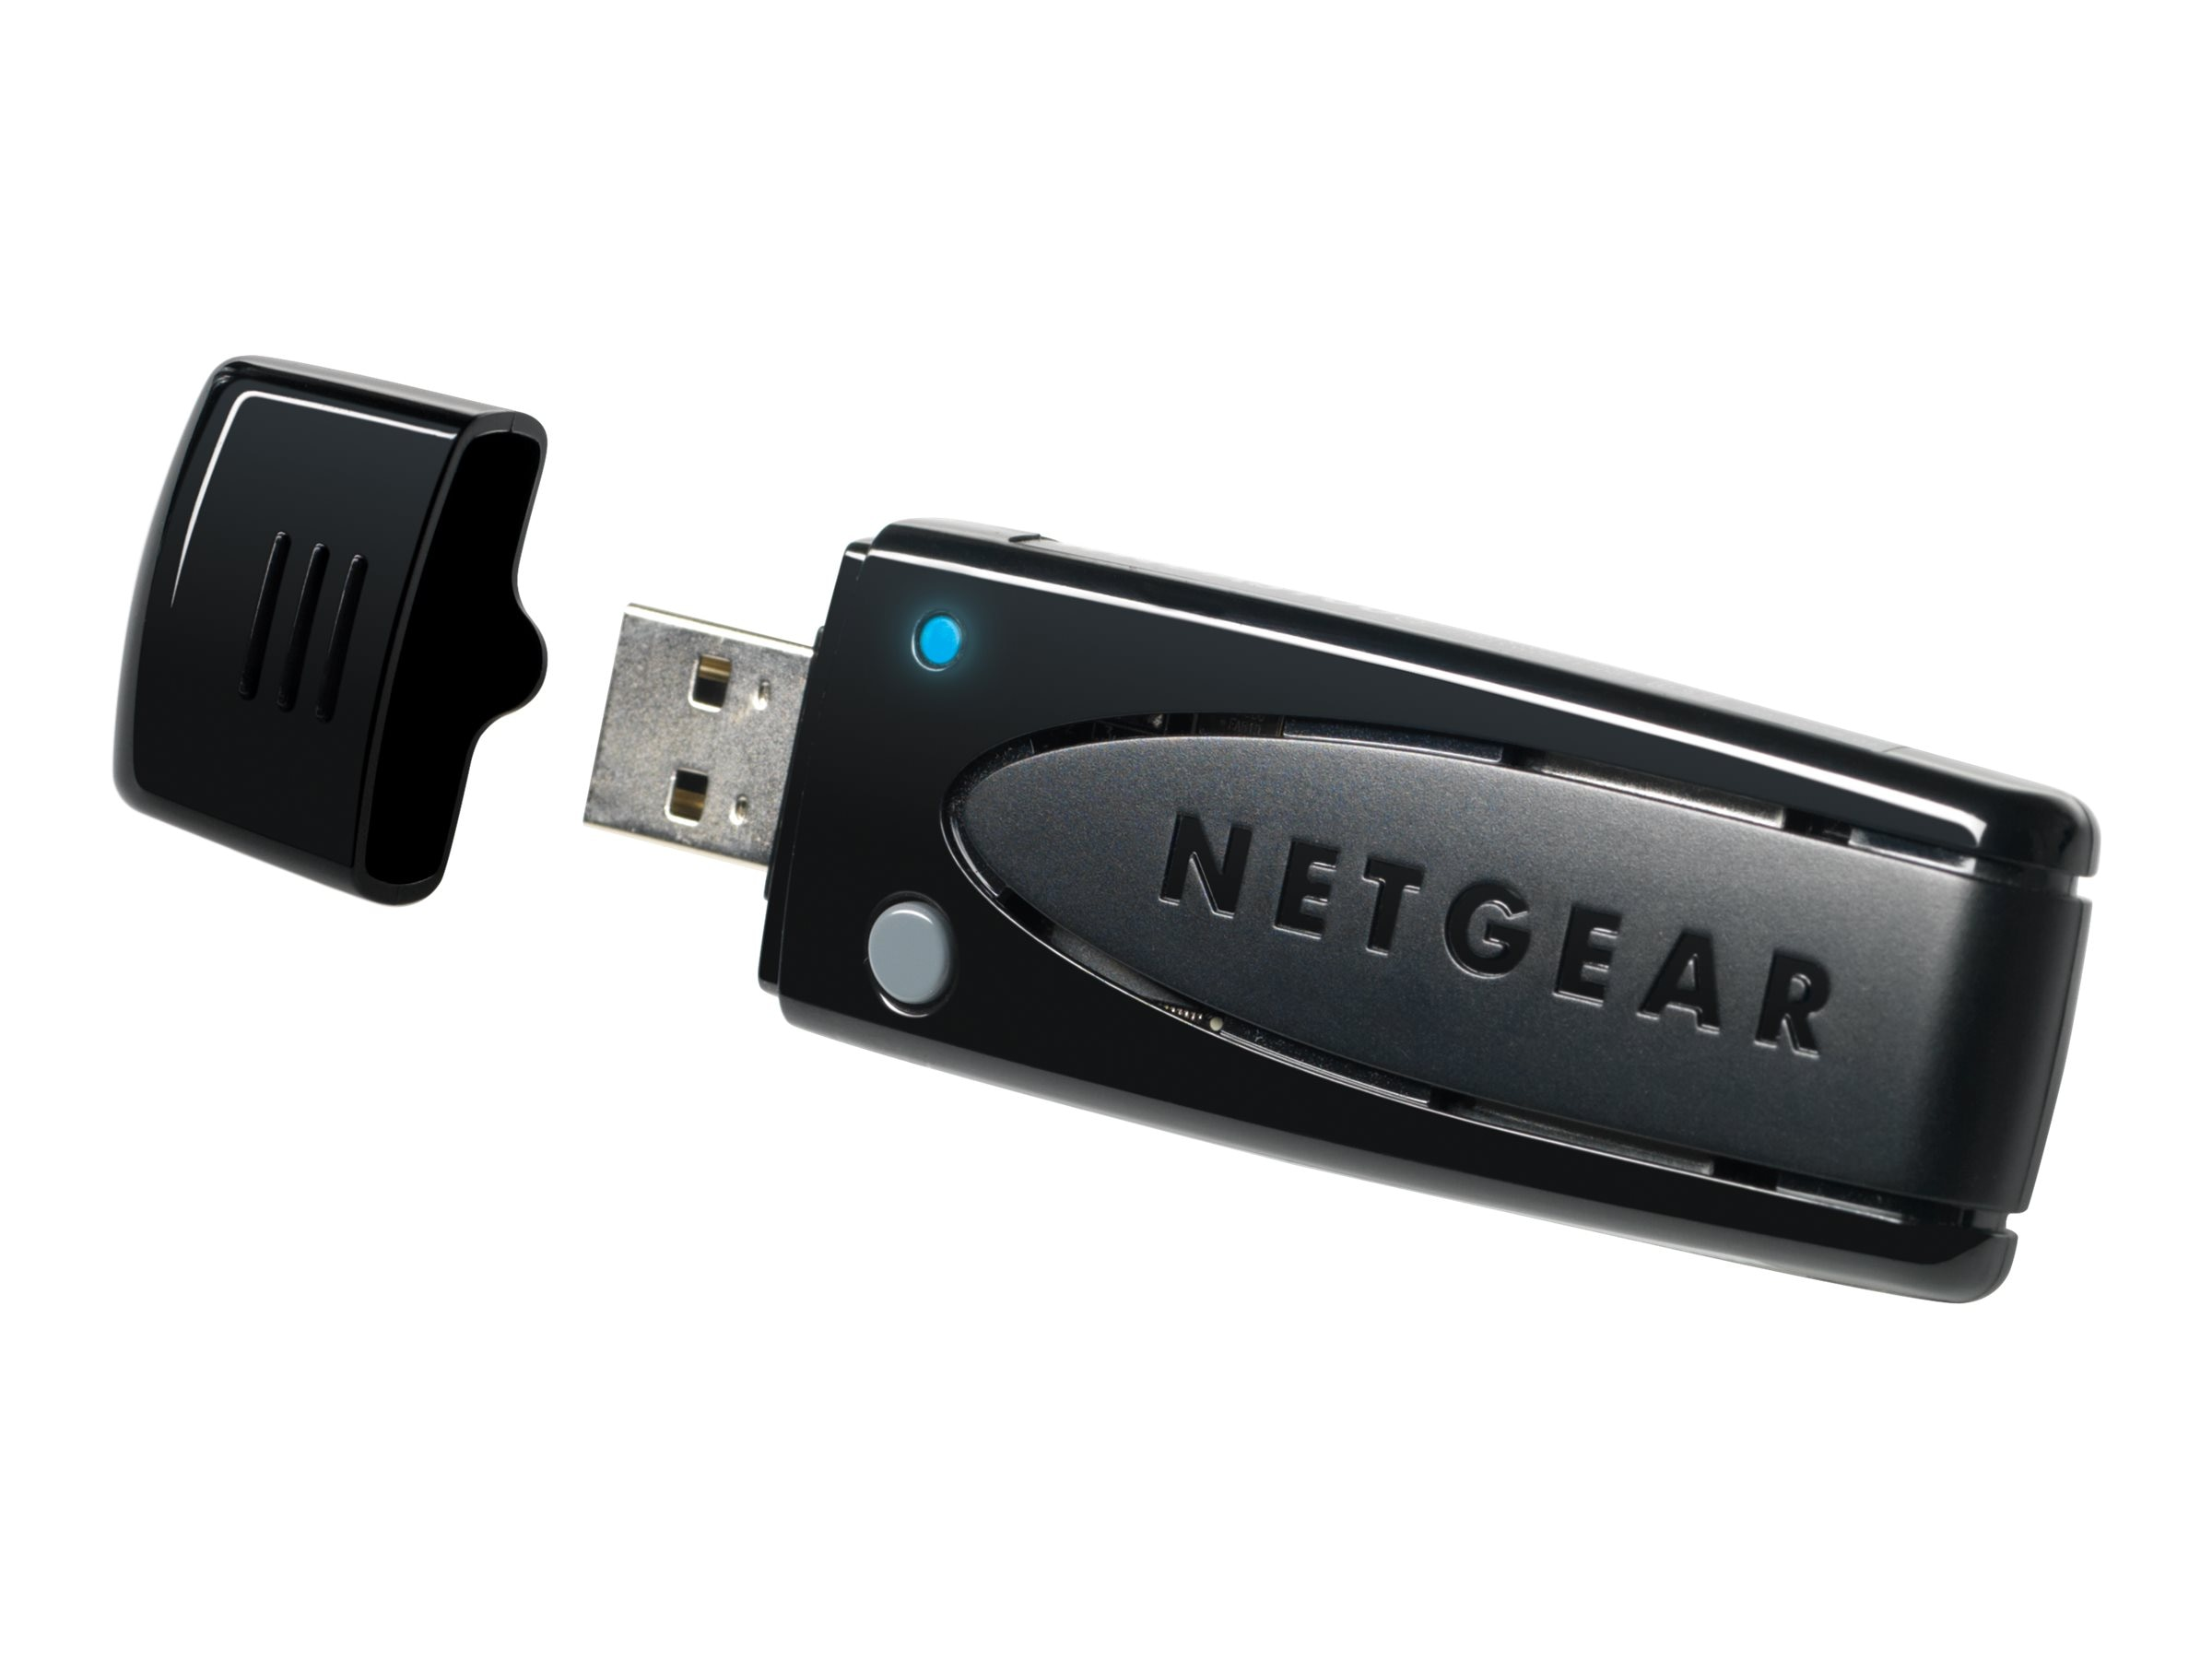 Netgear RangeMax Dual Band Wireless-N USB 2.0 Adapter, WNDA3100-100NAS